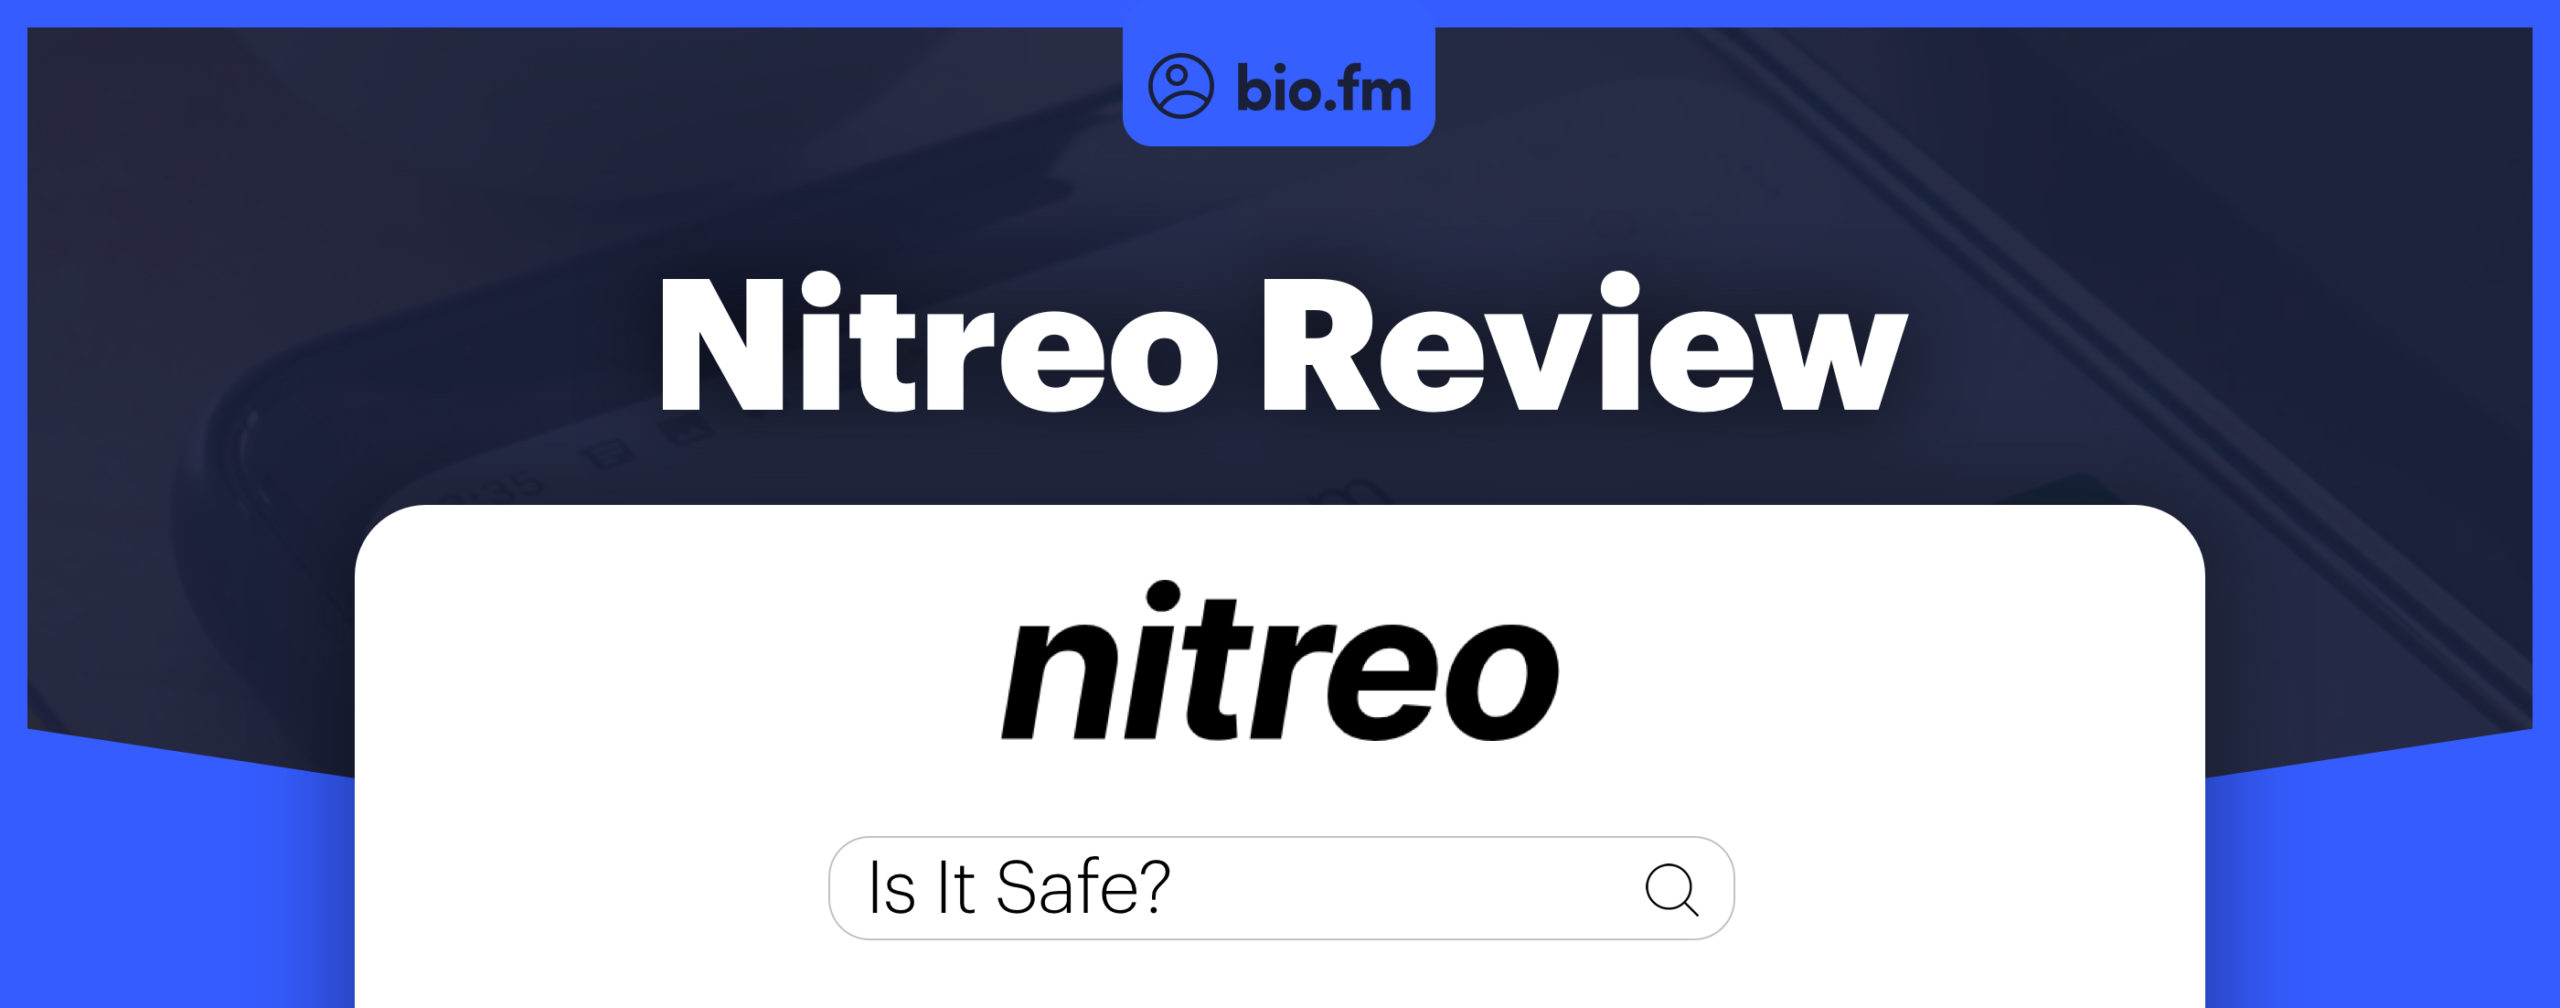 nitreo review featured image